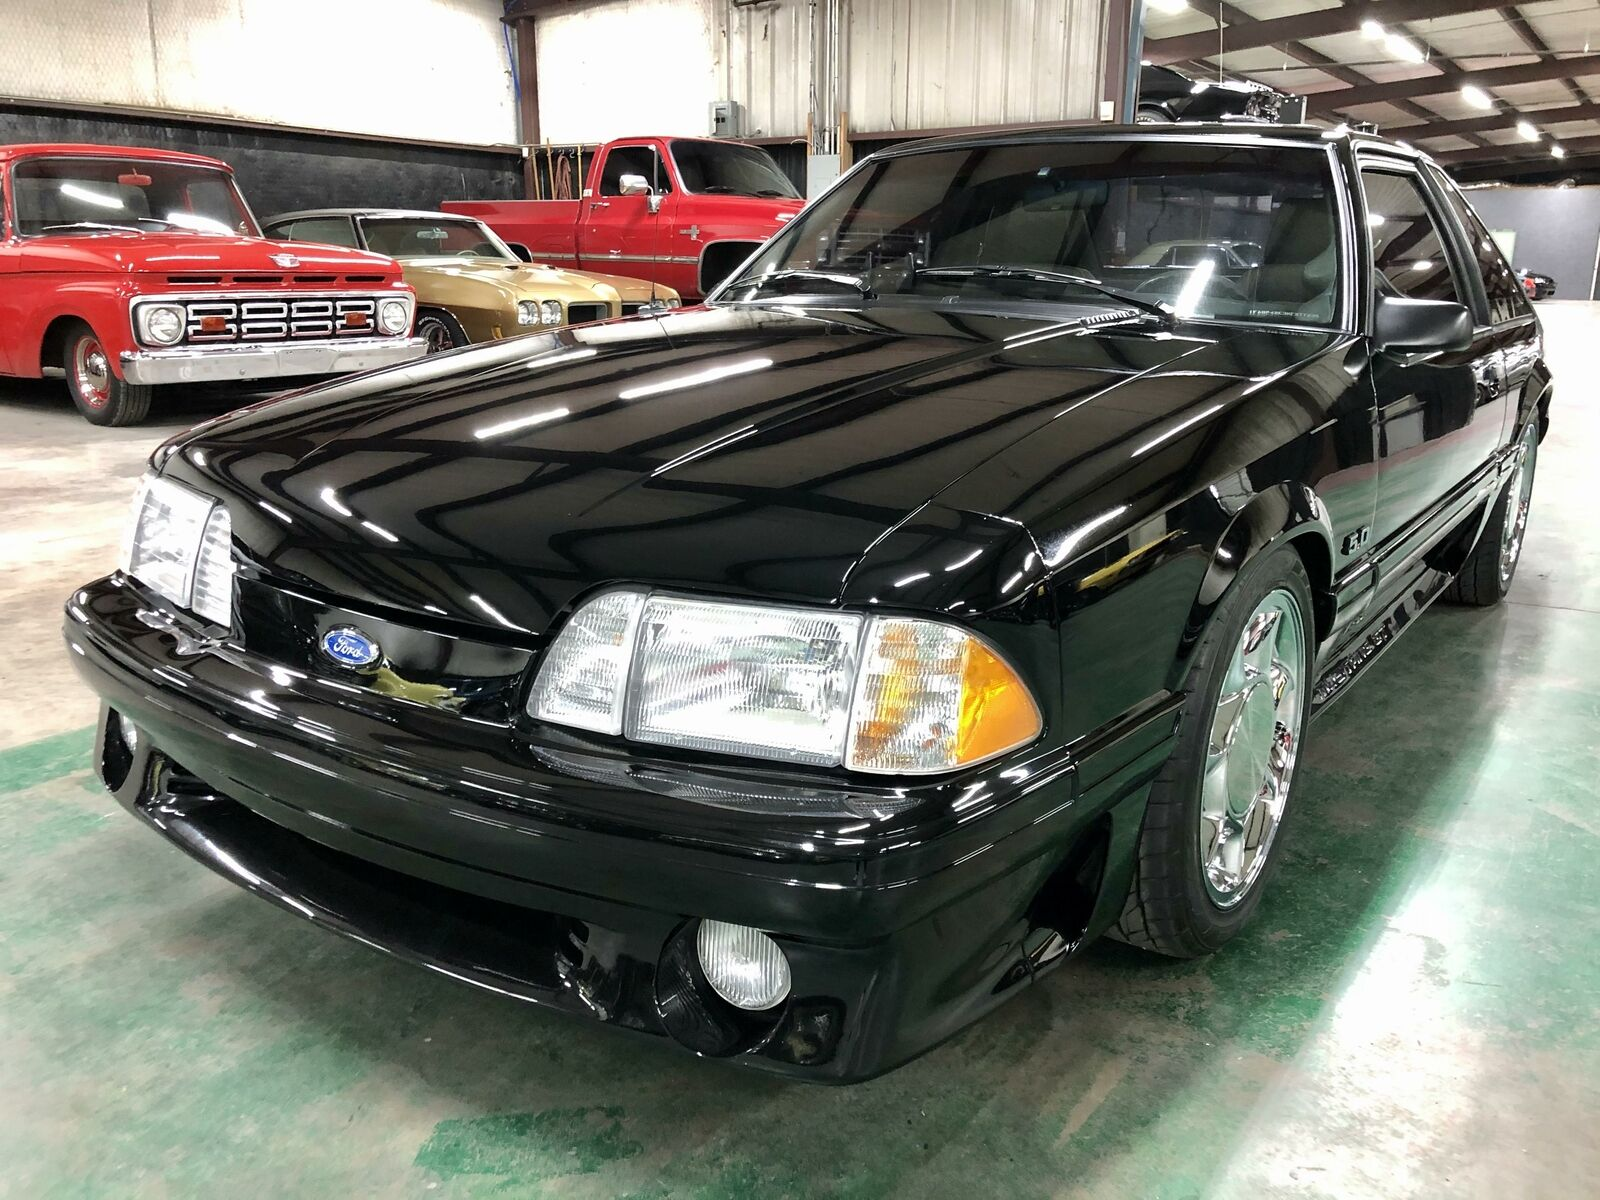 1989 Ford Mustang GT / Supercharged | eBay